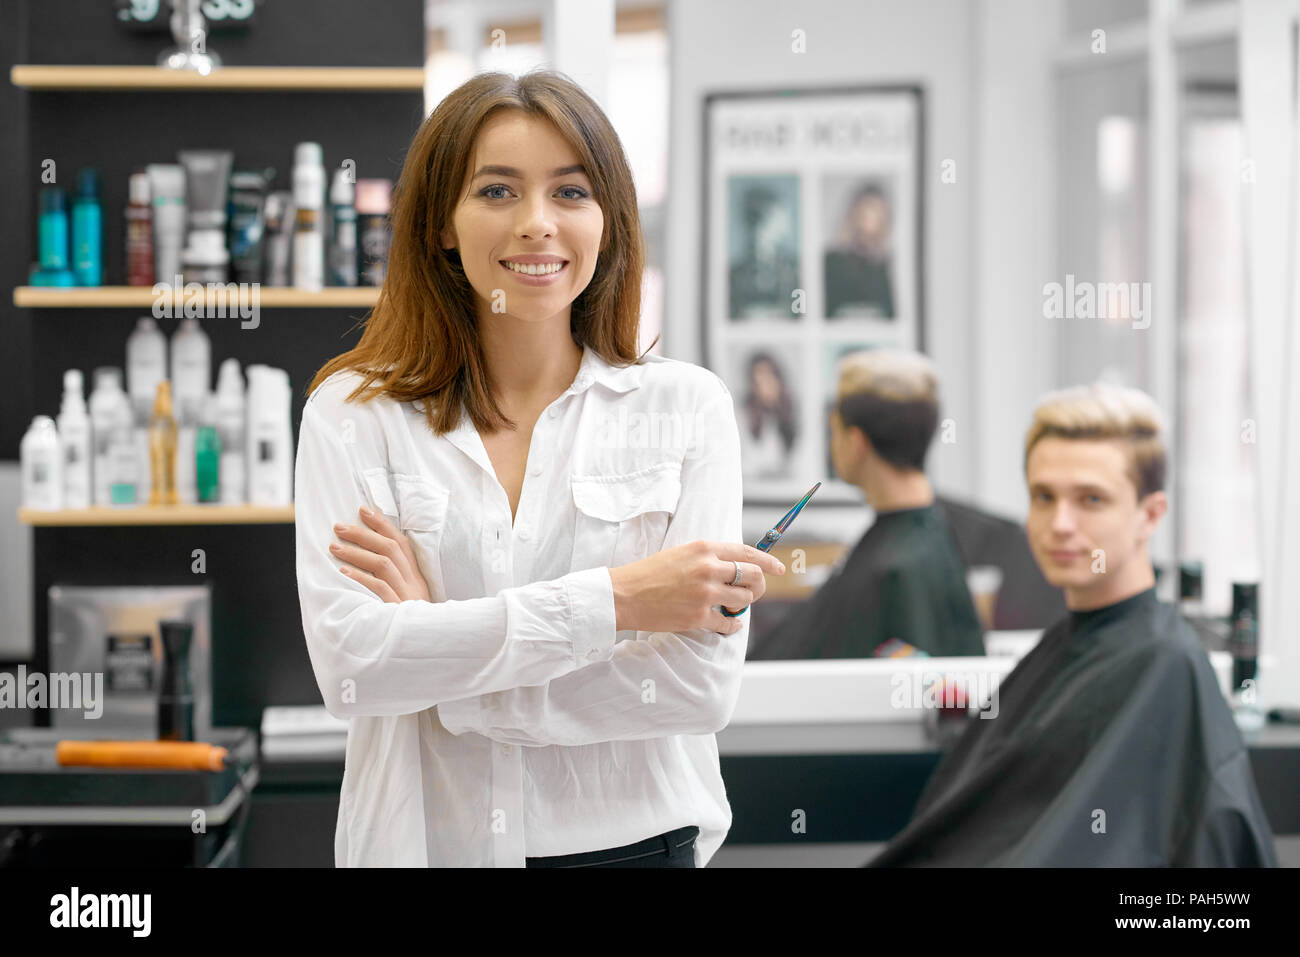 Female hairdresser posing in front of young male client sitting near big mirror and shelves with hair care products. Hairstyler wearing white casual shirt and looking at camera, smiling. - Stock Image